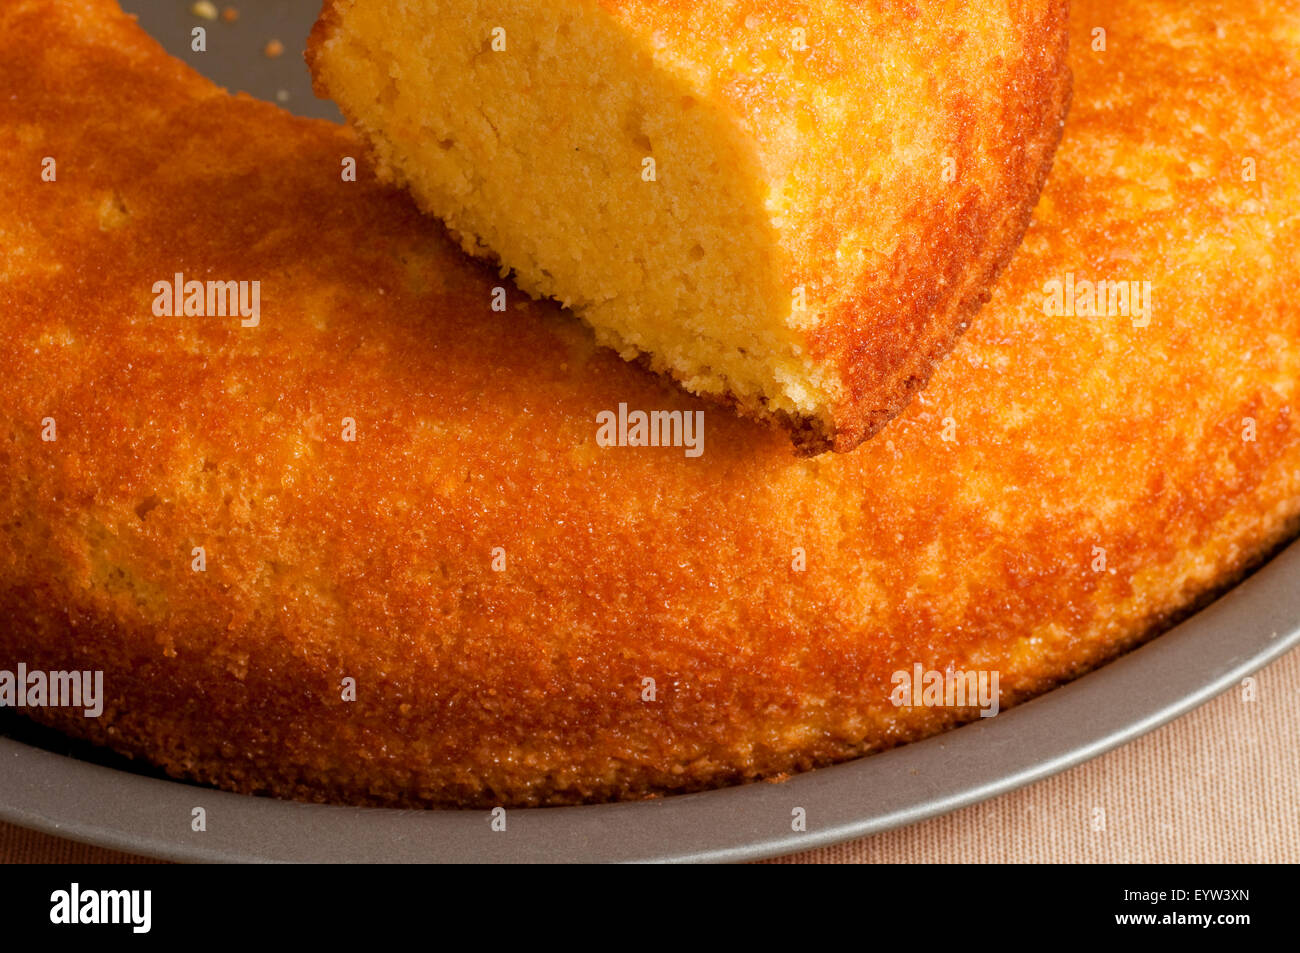 sweet donut whole and sliced - Stock Image